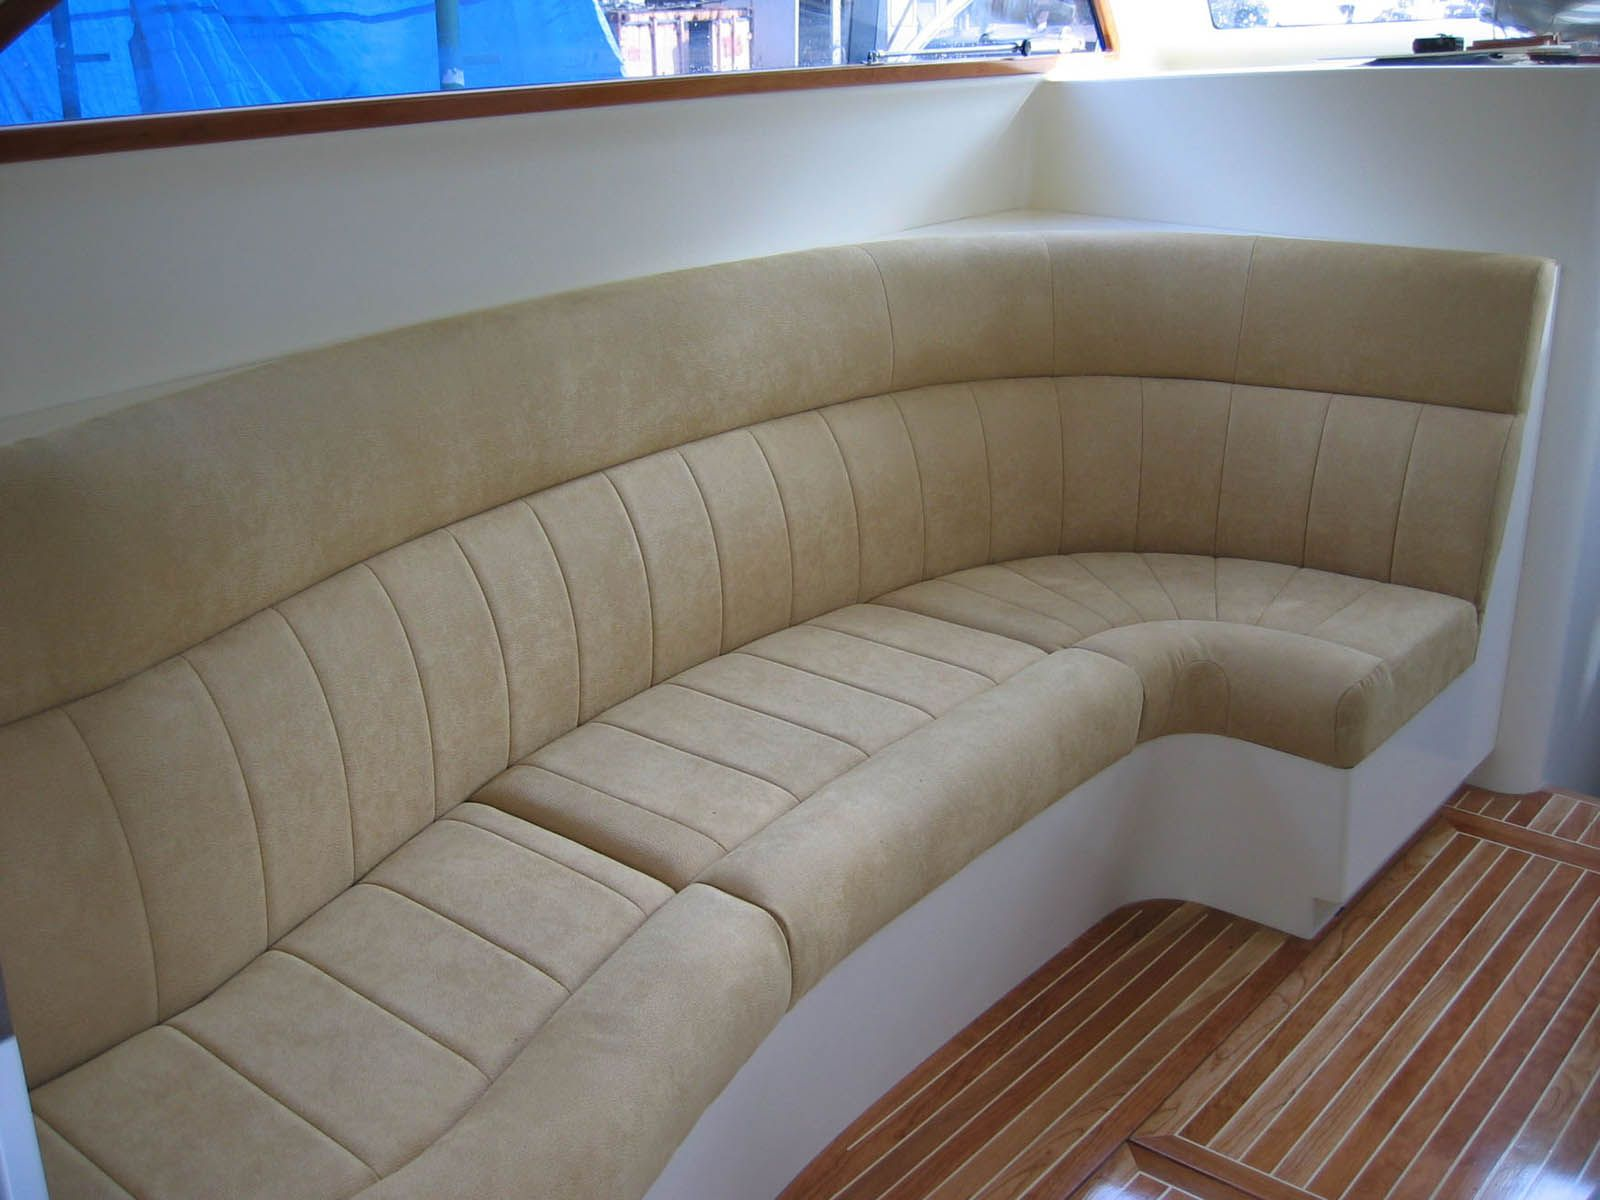 Re Upholster Boat Interior In Quality Upholstery Fabric For A Modern Look.  Raeline Upholstery Can Achieve This Look For Your Boat   Contact Us At ...